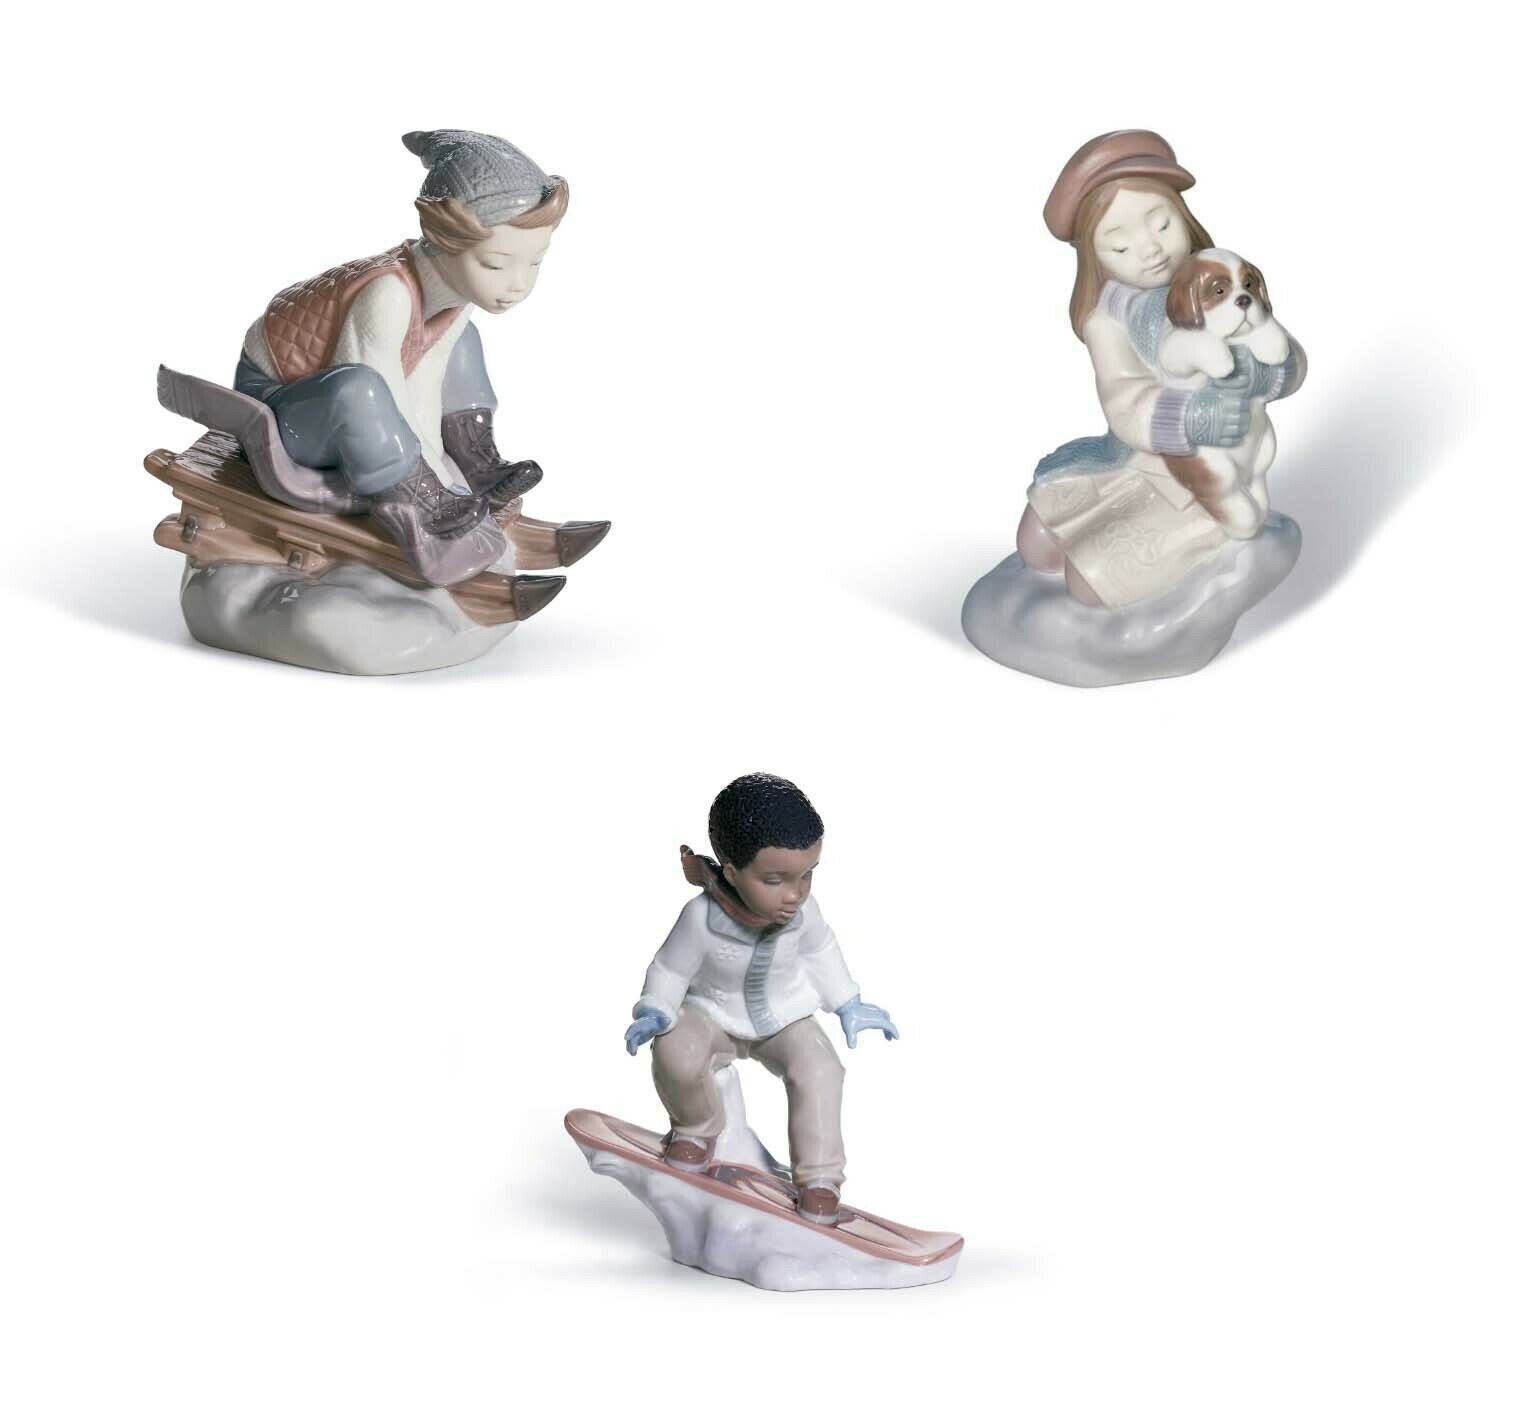 Primary image for Lladro Lot 8265 I'll Keep You Warm & 8264 Look Out Below & 8263 This Is Fun New